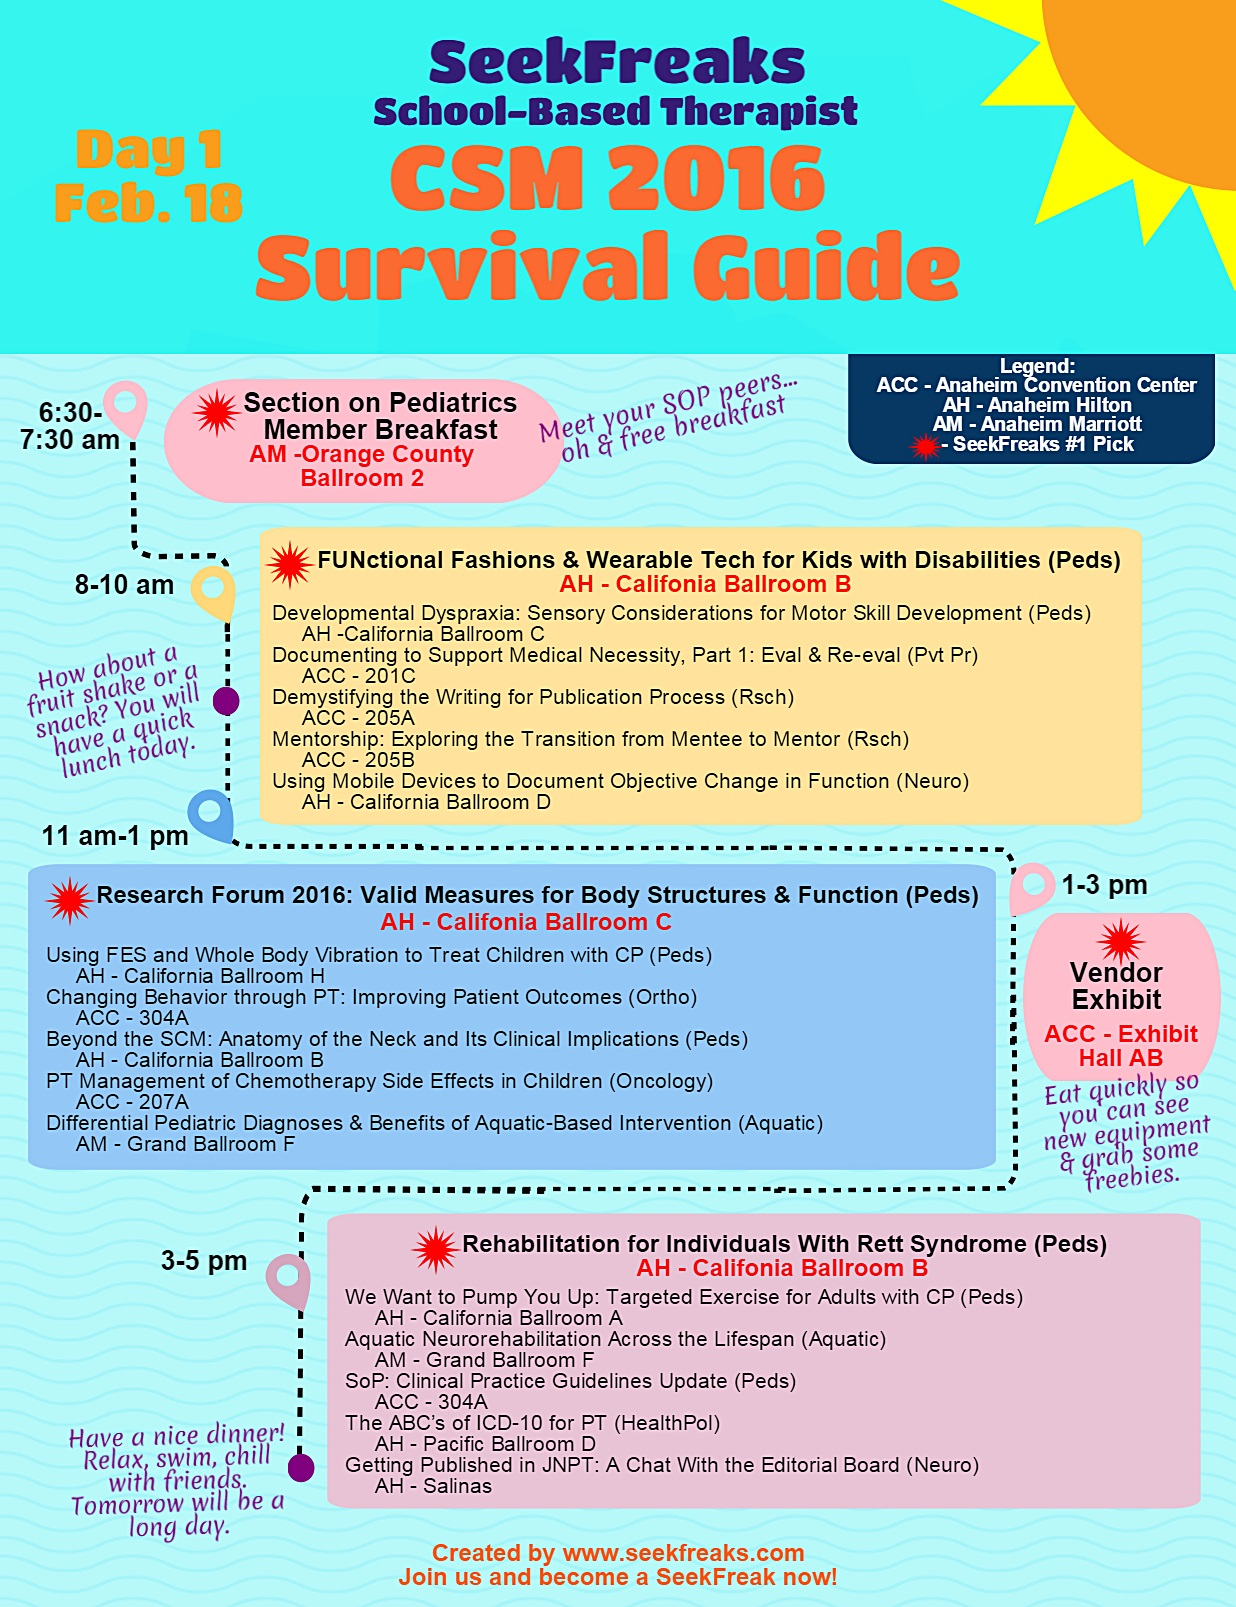 SeekFreaks School-based Therapist CSM Survival Guide - Day 1